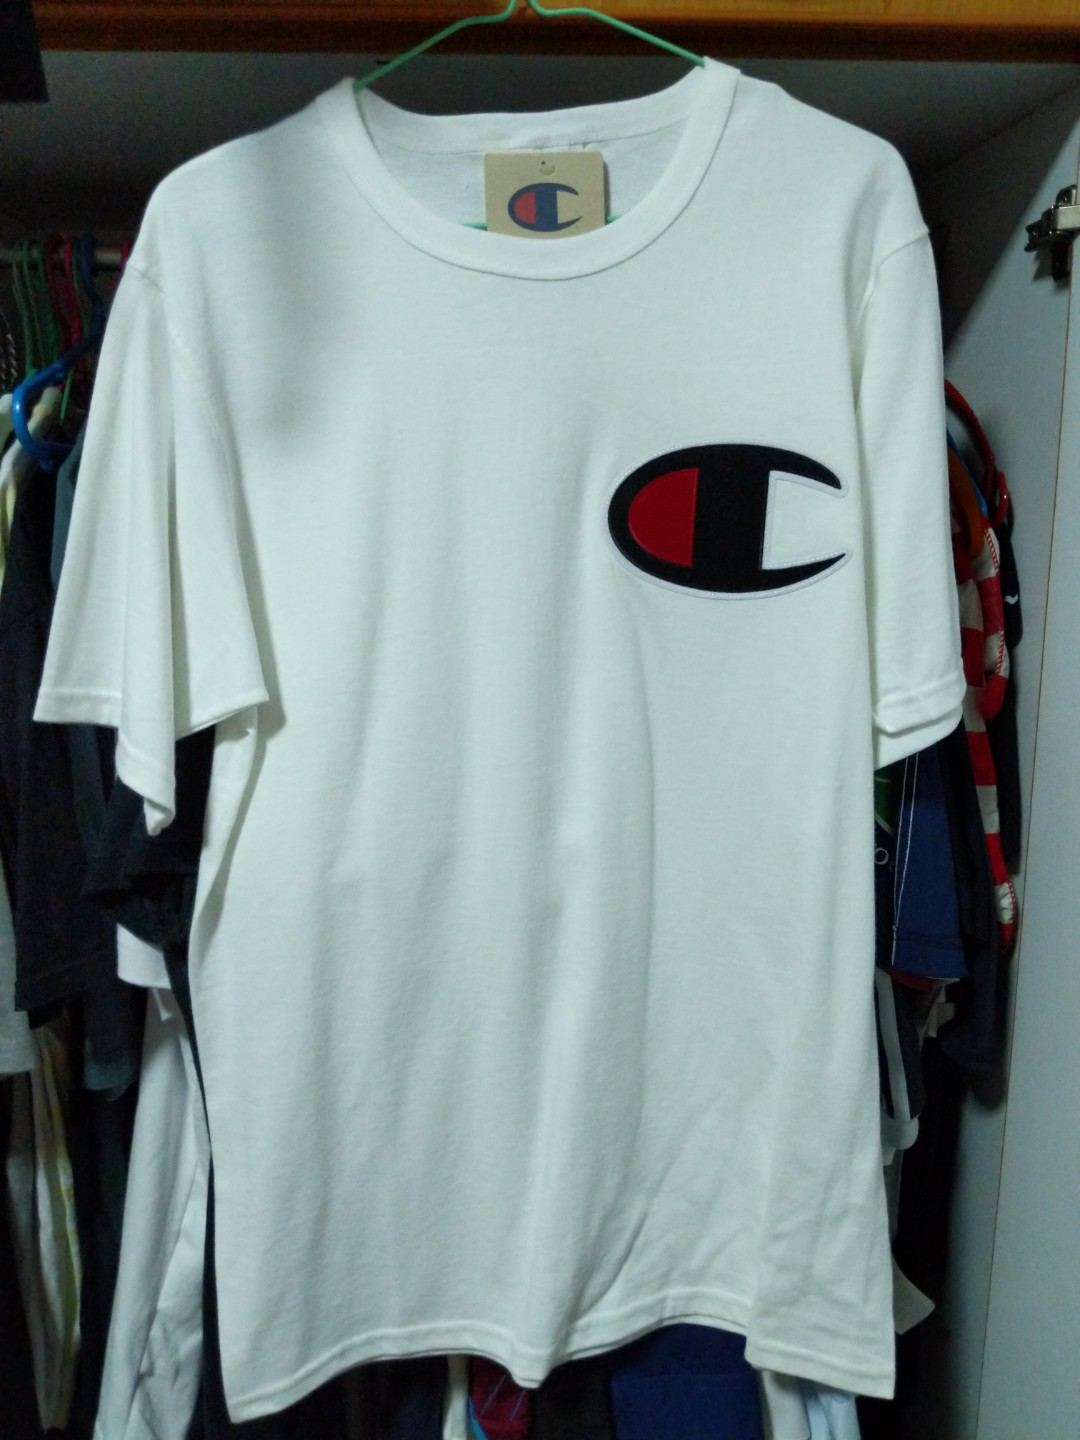 1b79be00 Champion Heritage Big C Patch White T-Shirt, Men's Fashion, Clothes, Tops  on Carousell